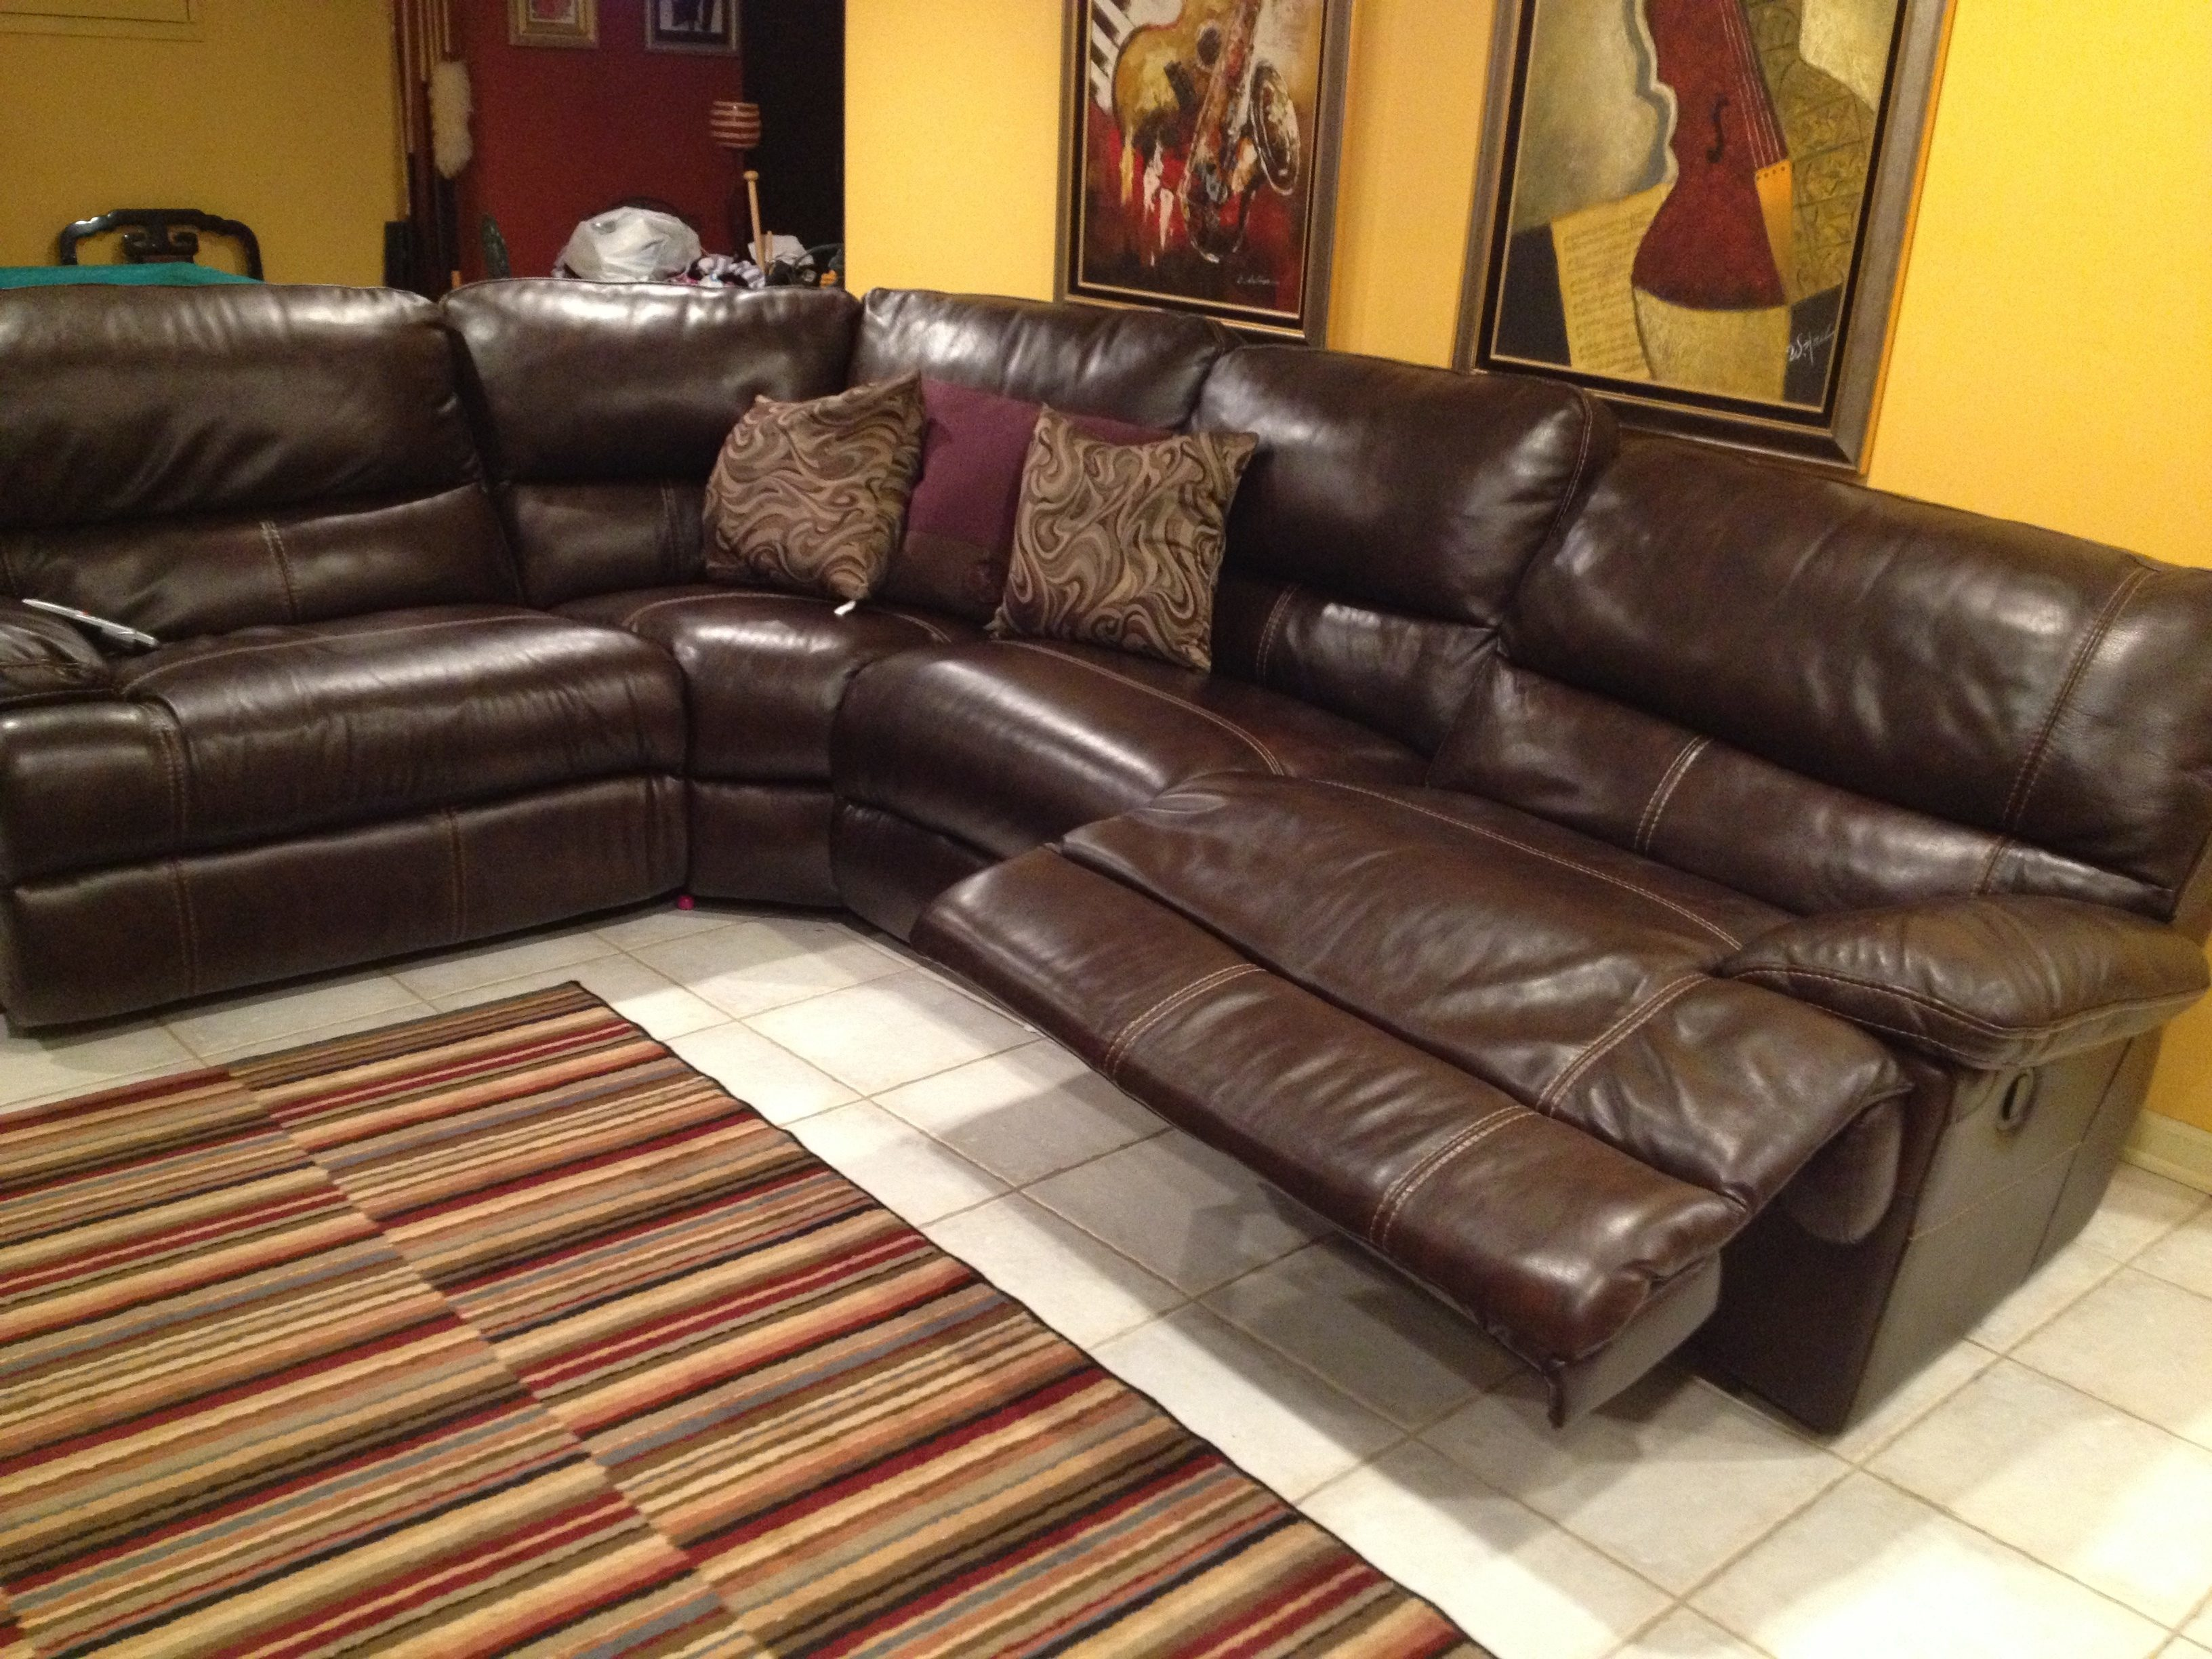 Leather sofa ratings leather furniture reviews top brands for Rate furniture brands